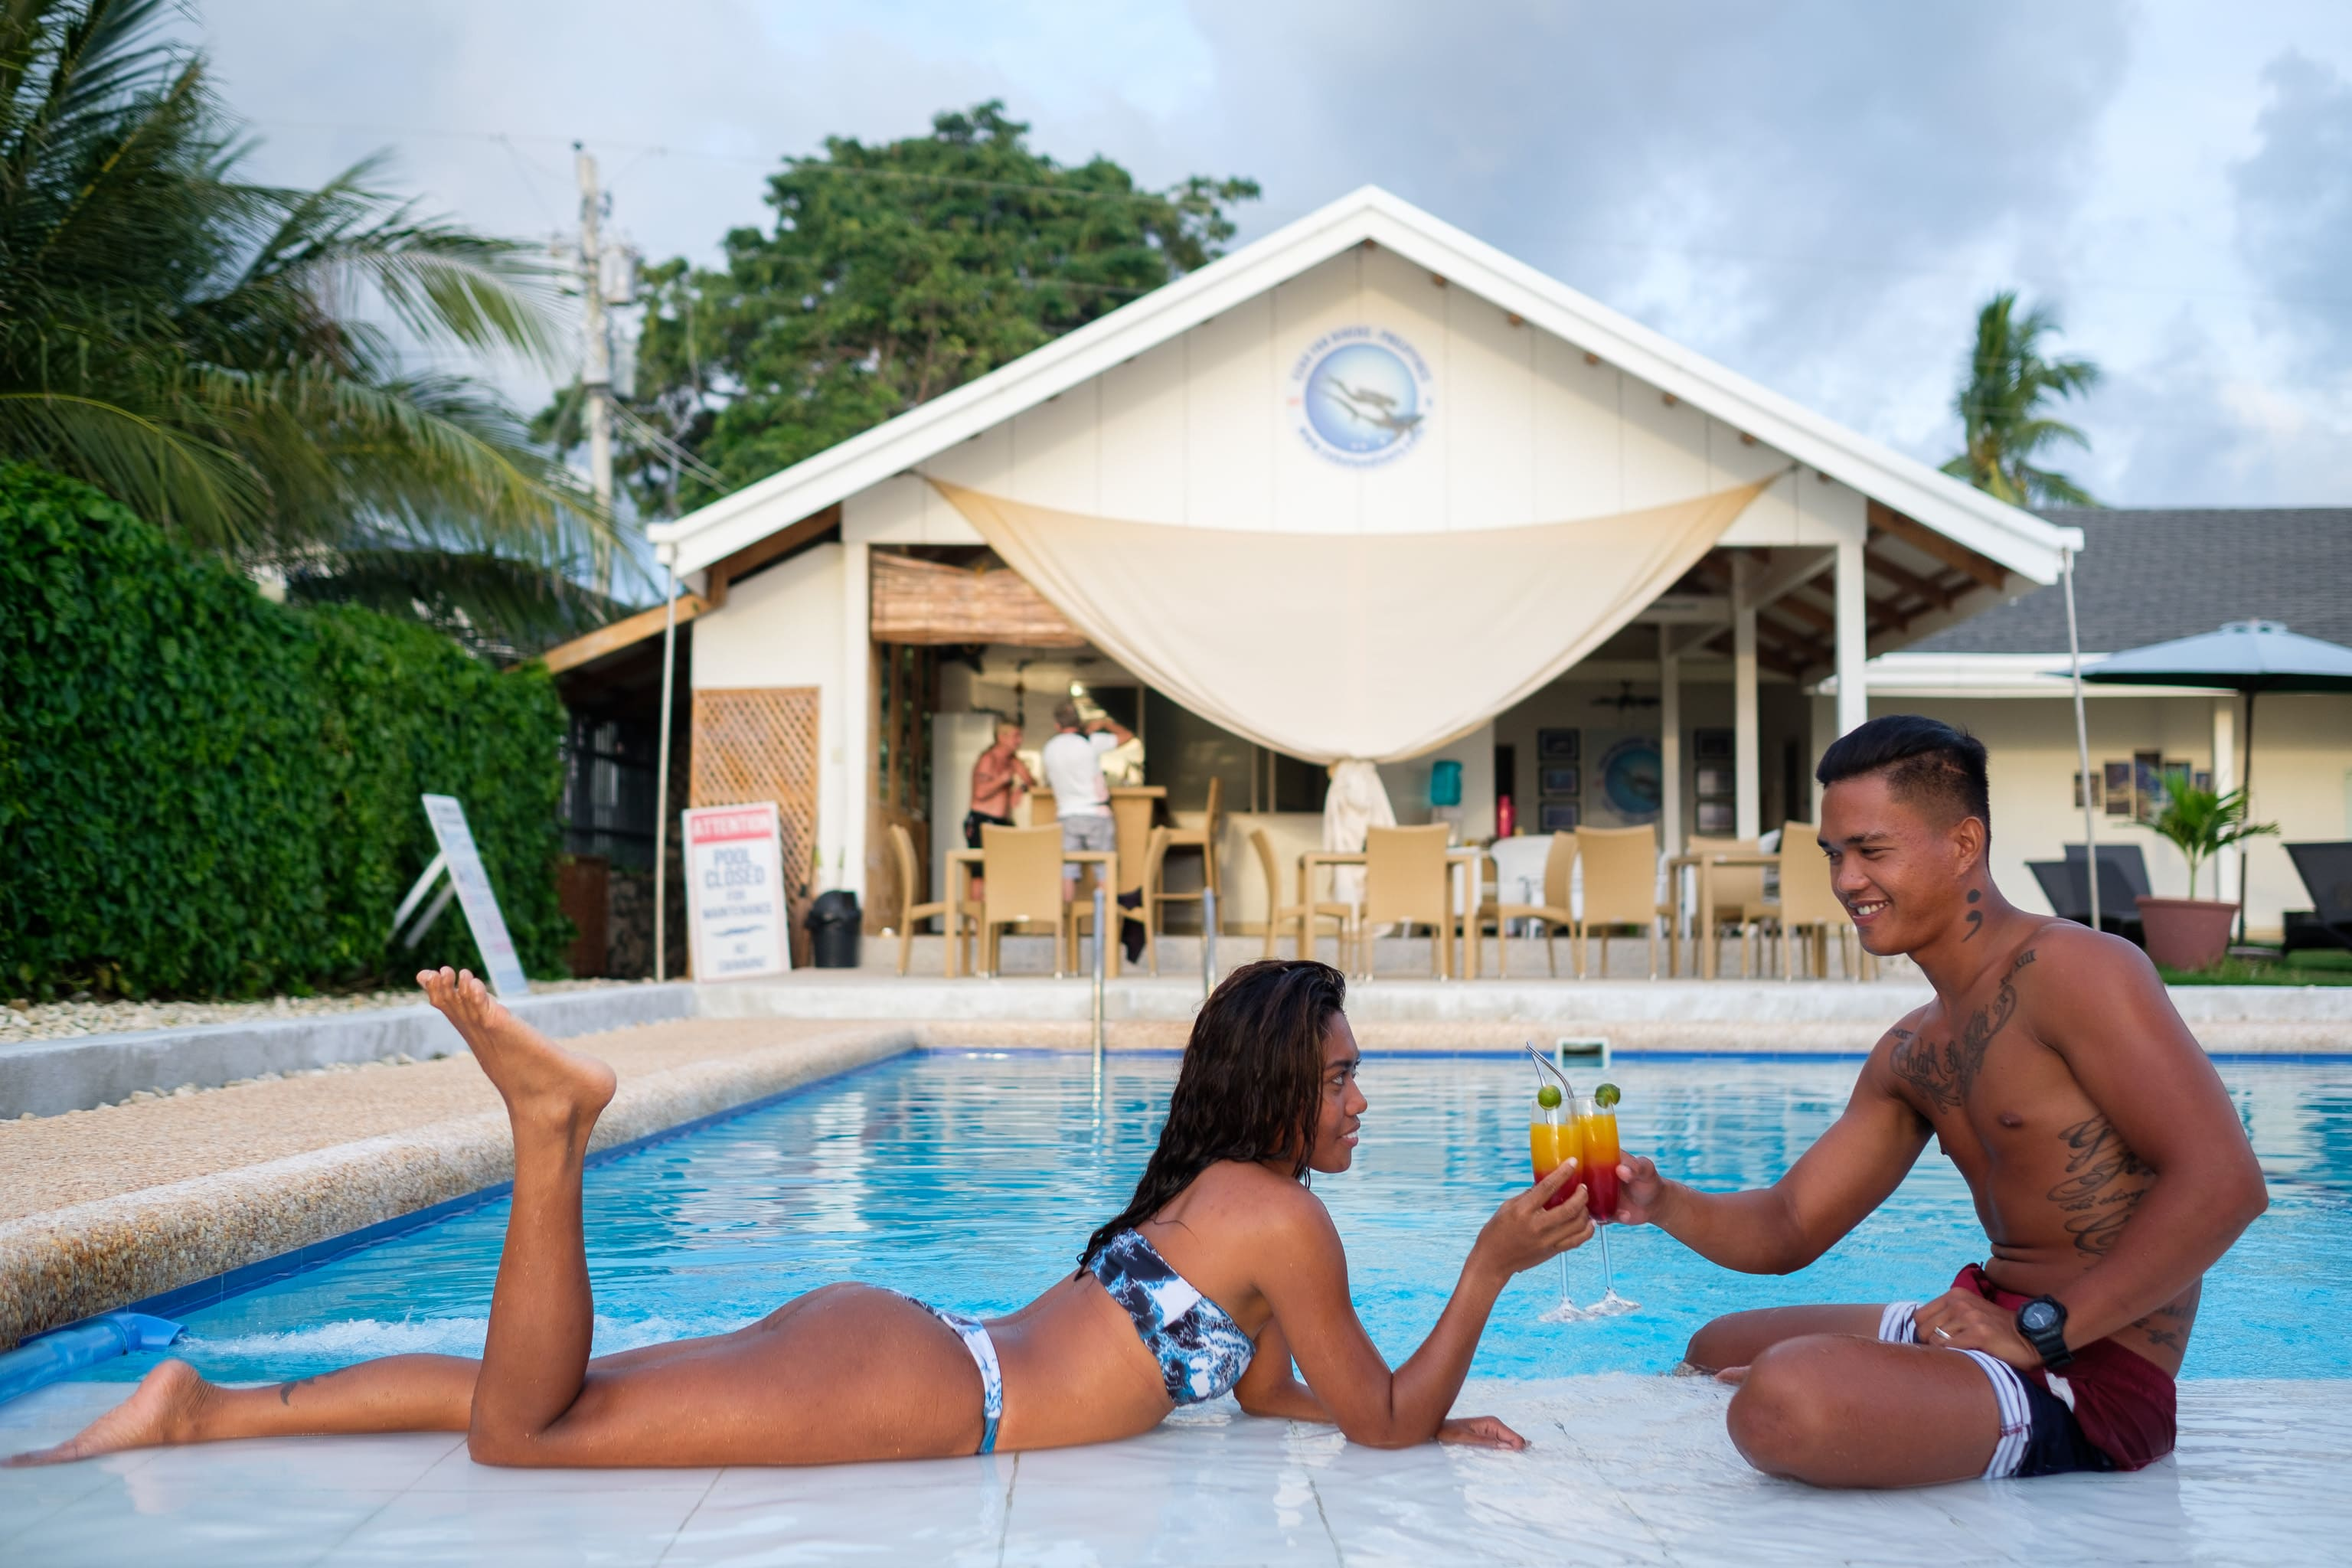 A couple enjoying their time at the pool of Cebu Seaview Dive Resort